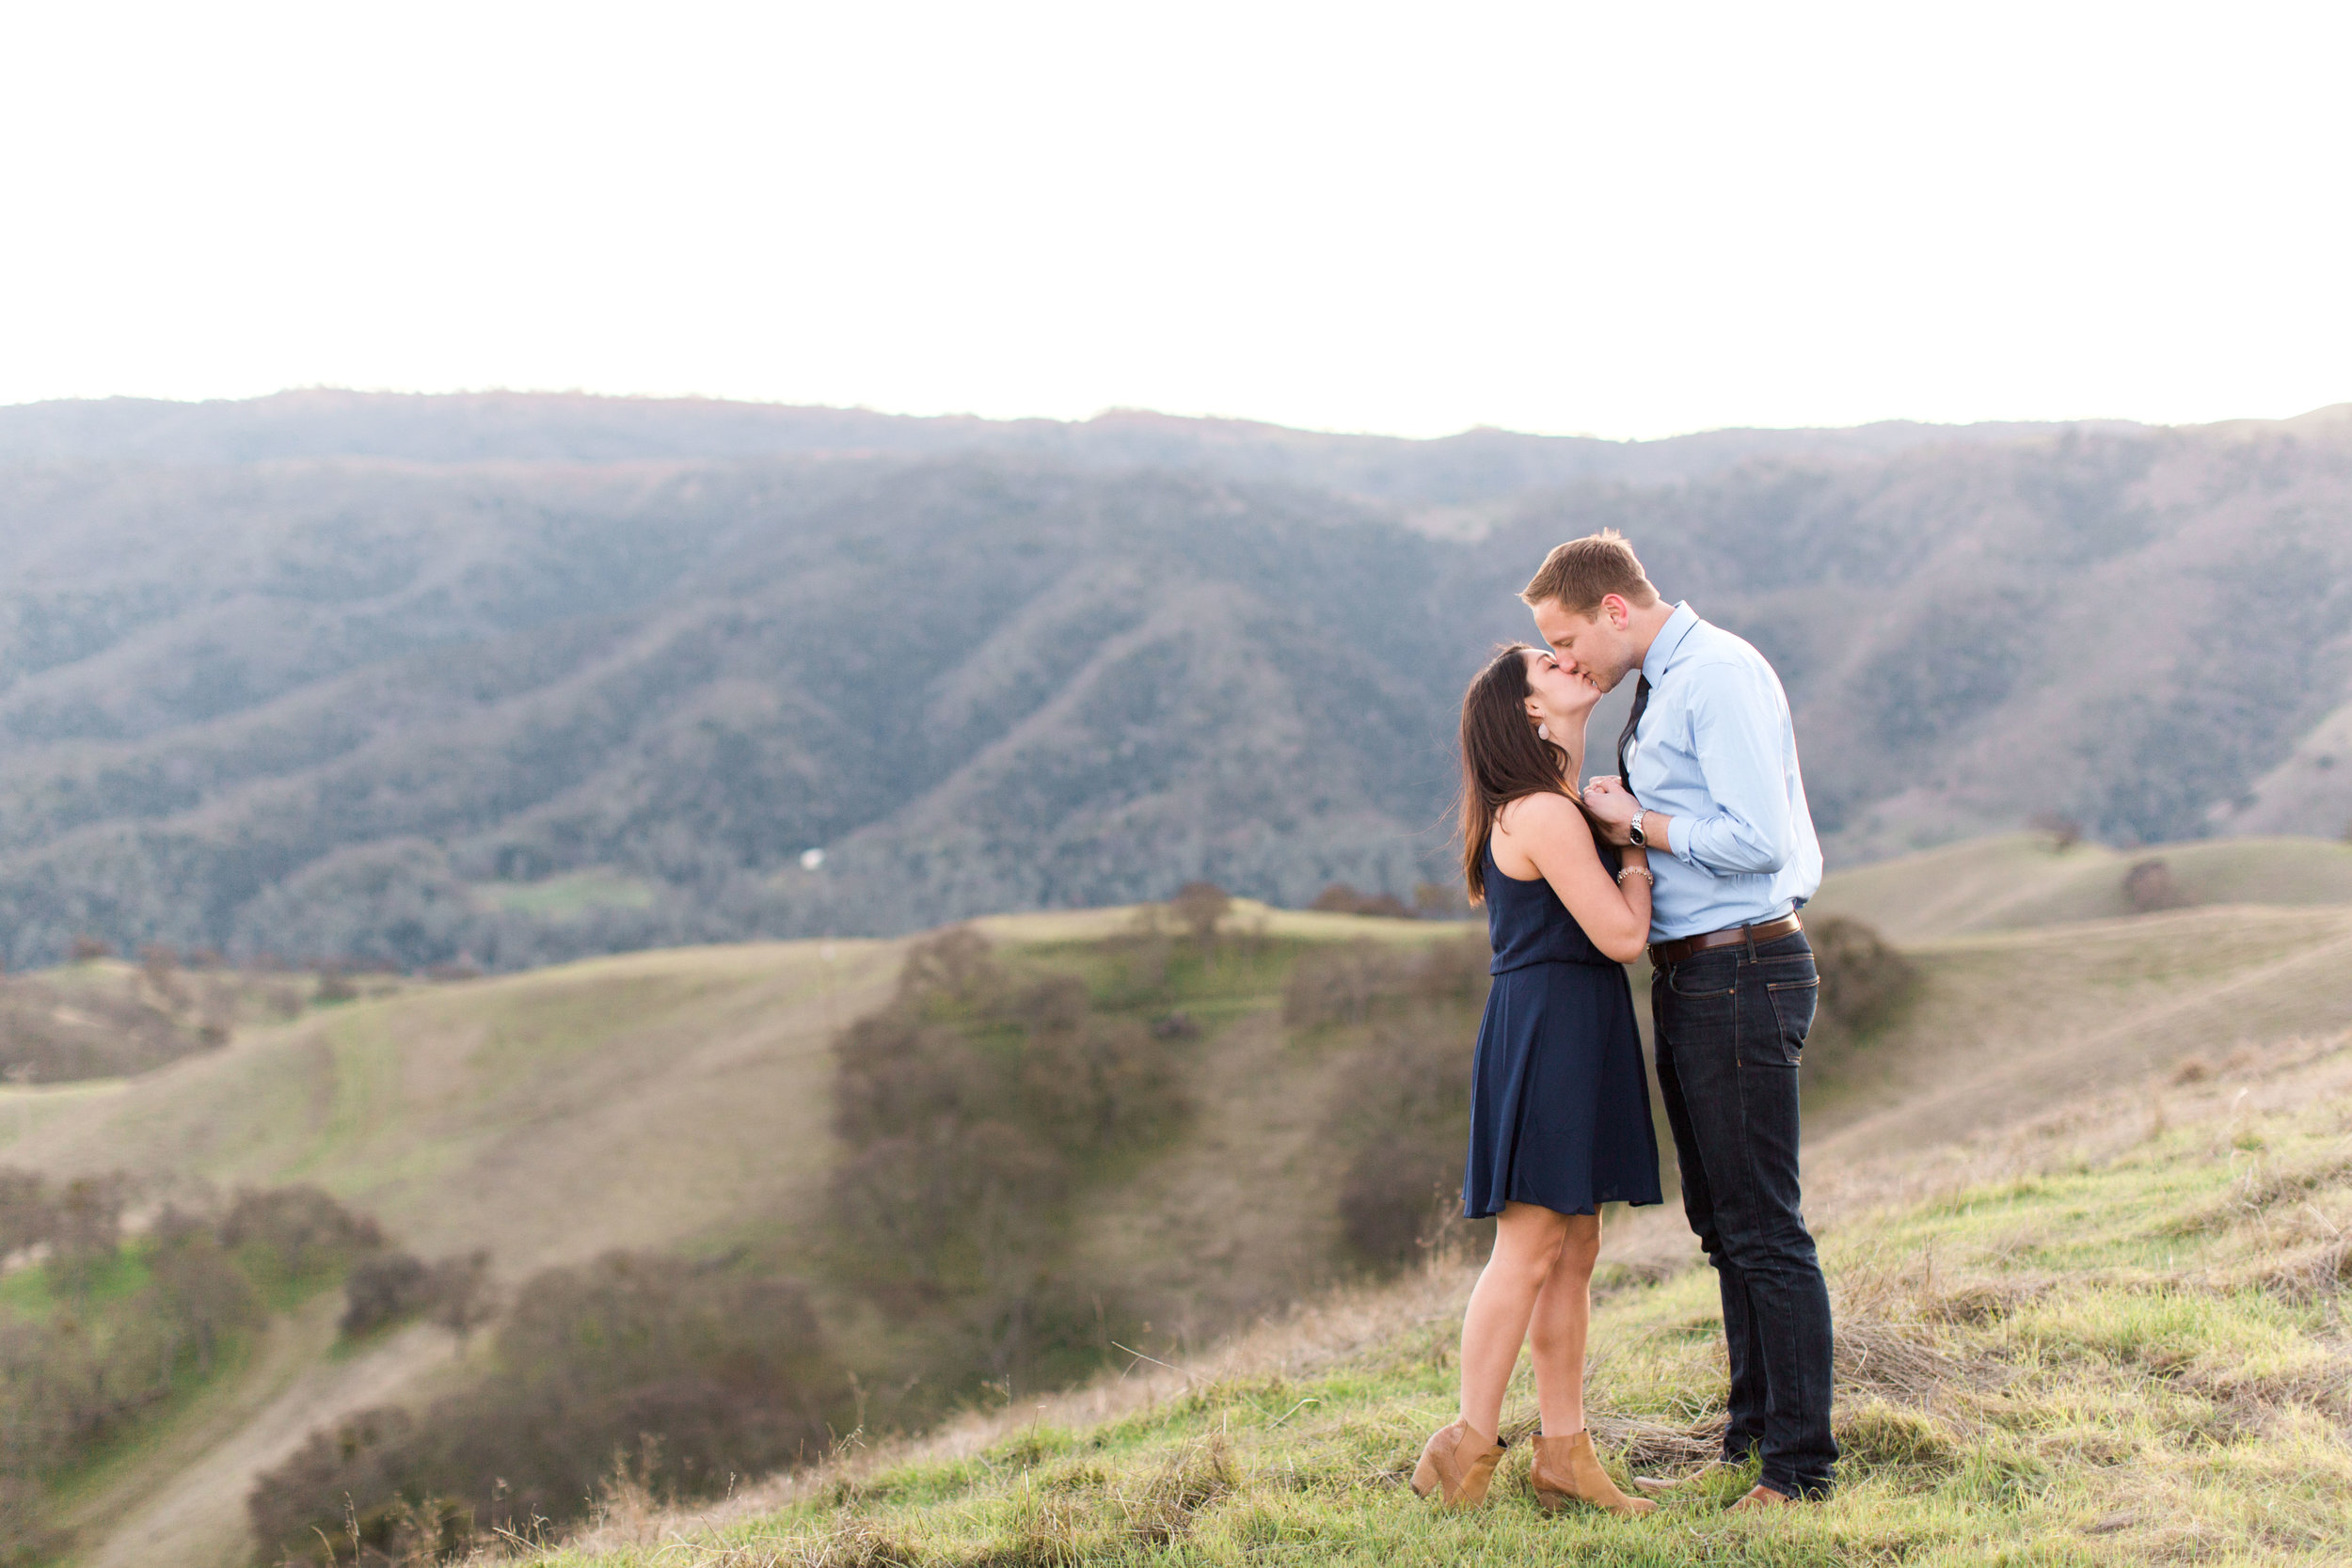 livermore-engagement-photography-at-del-valle-17-2.jpg